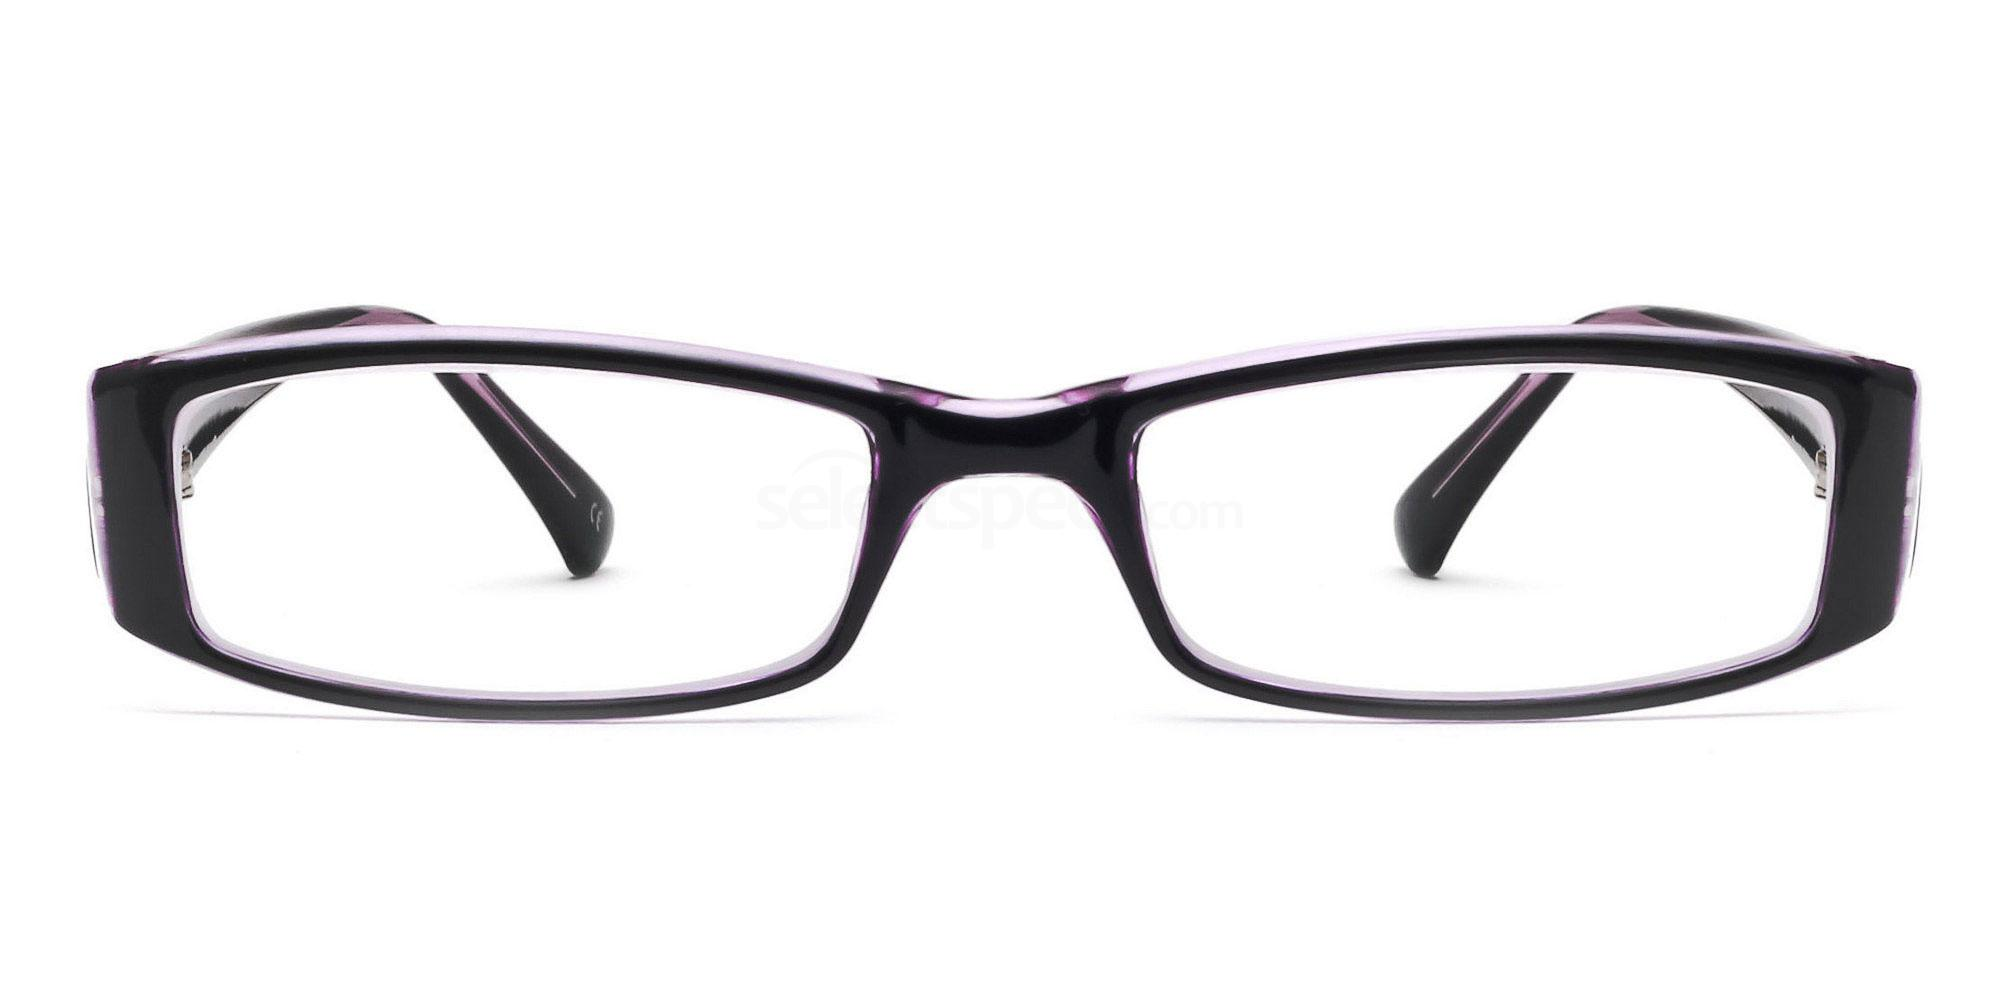 C44 P2251 - Black and Purple Glasses, Savannah